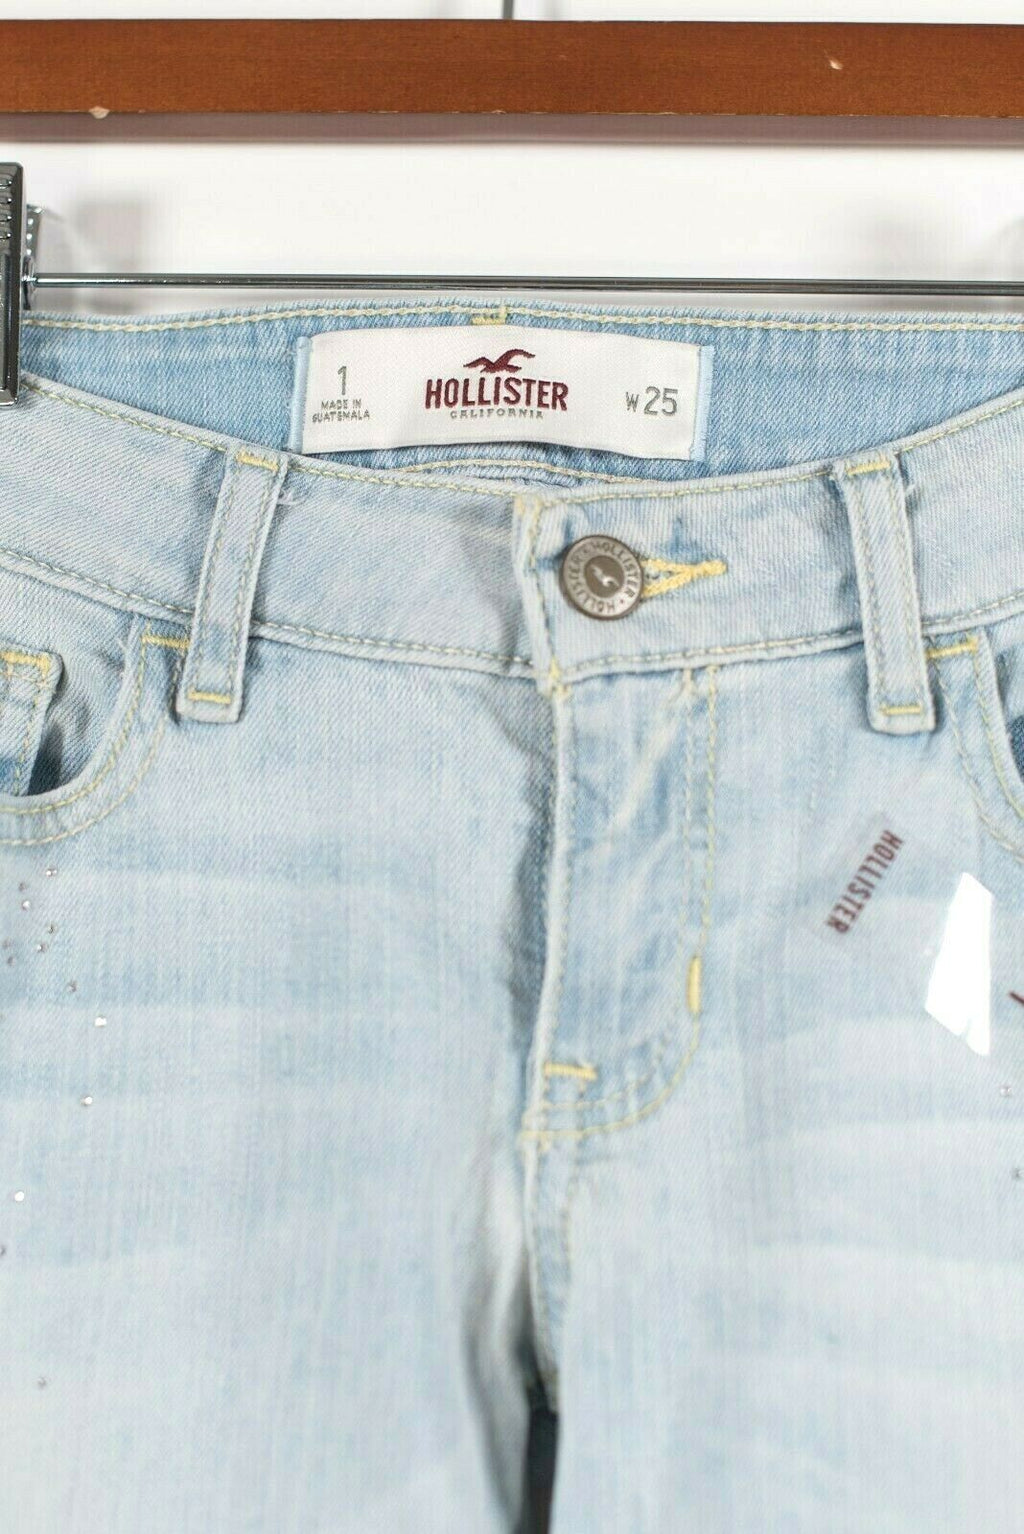 Hollister Womens Size 25 XS Light Blue Jeans Sparkle Glitter Applique Leg NWOT